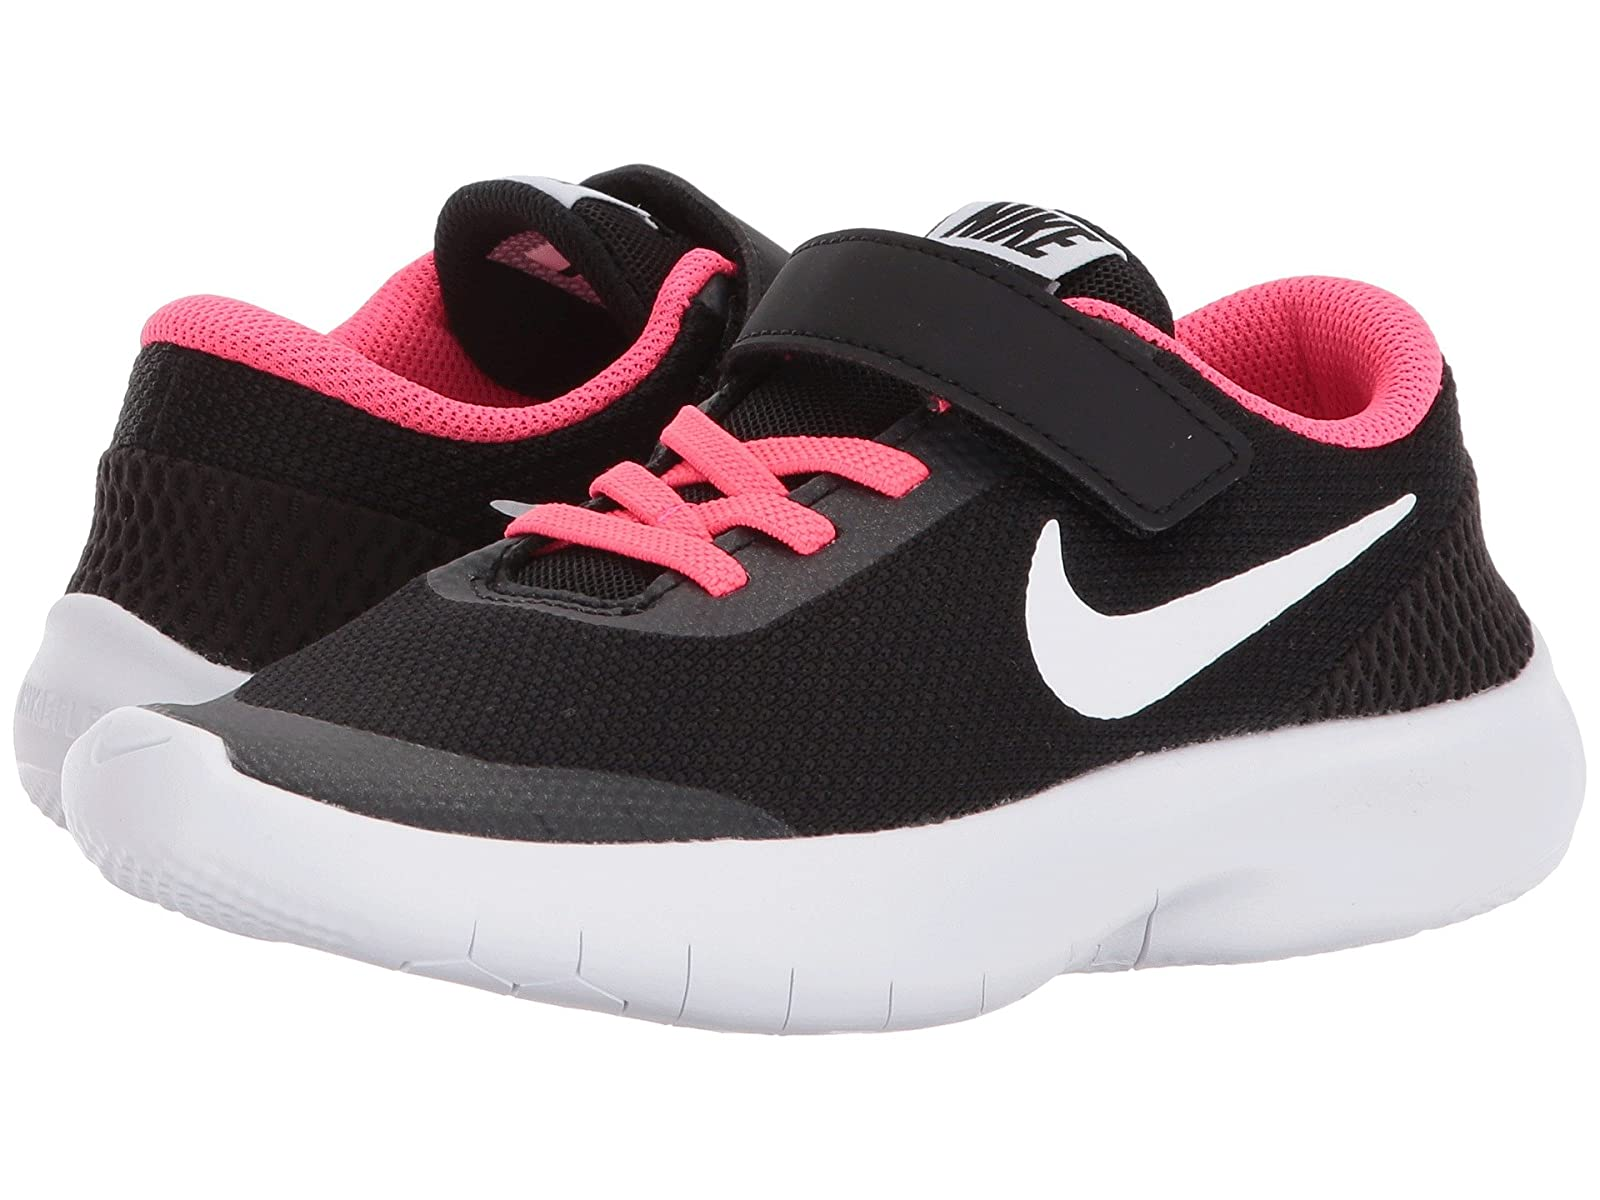 Nike Kids Flex Experience Run 7 (Little Kid)Atmospheric grades have affordable shoes